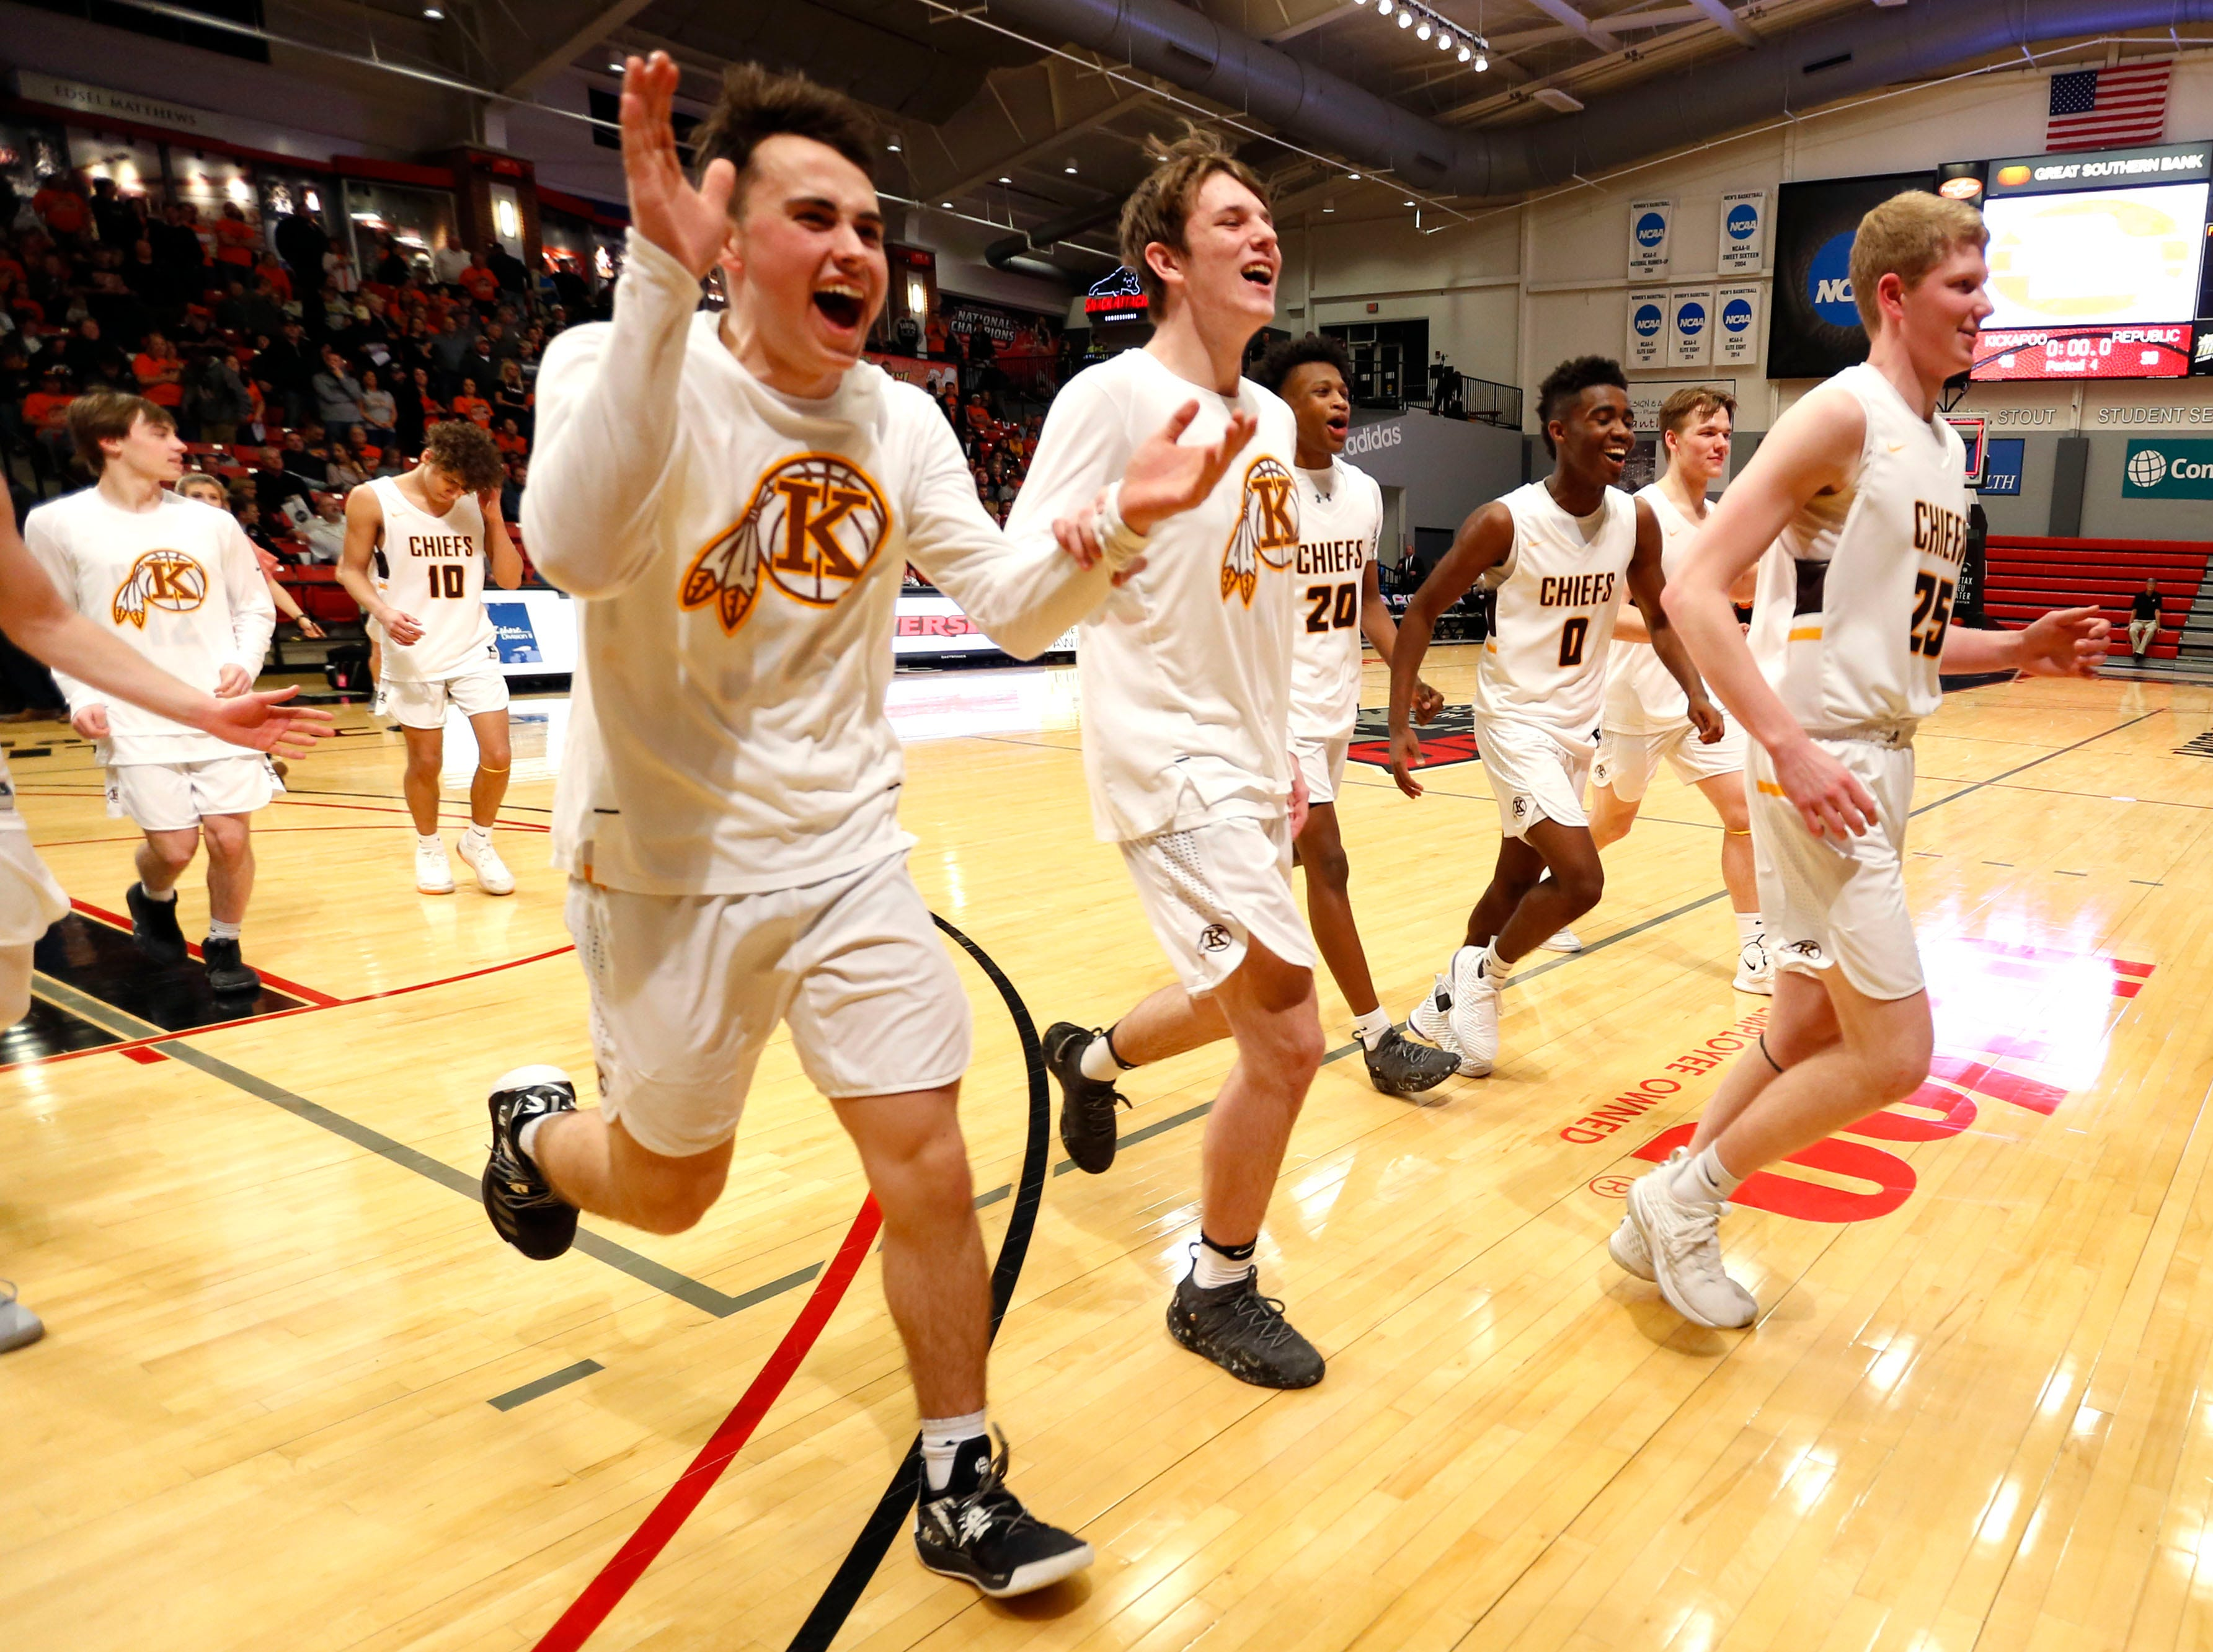 The Kickapoo Chiefs celebrate after they beat the Republic Tigers during class 5 sectionals at the O'Reilly Family Event Center on Wednesday, March 6, 2019.